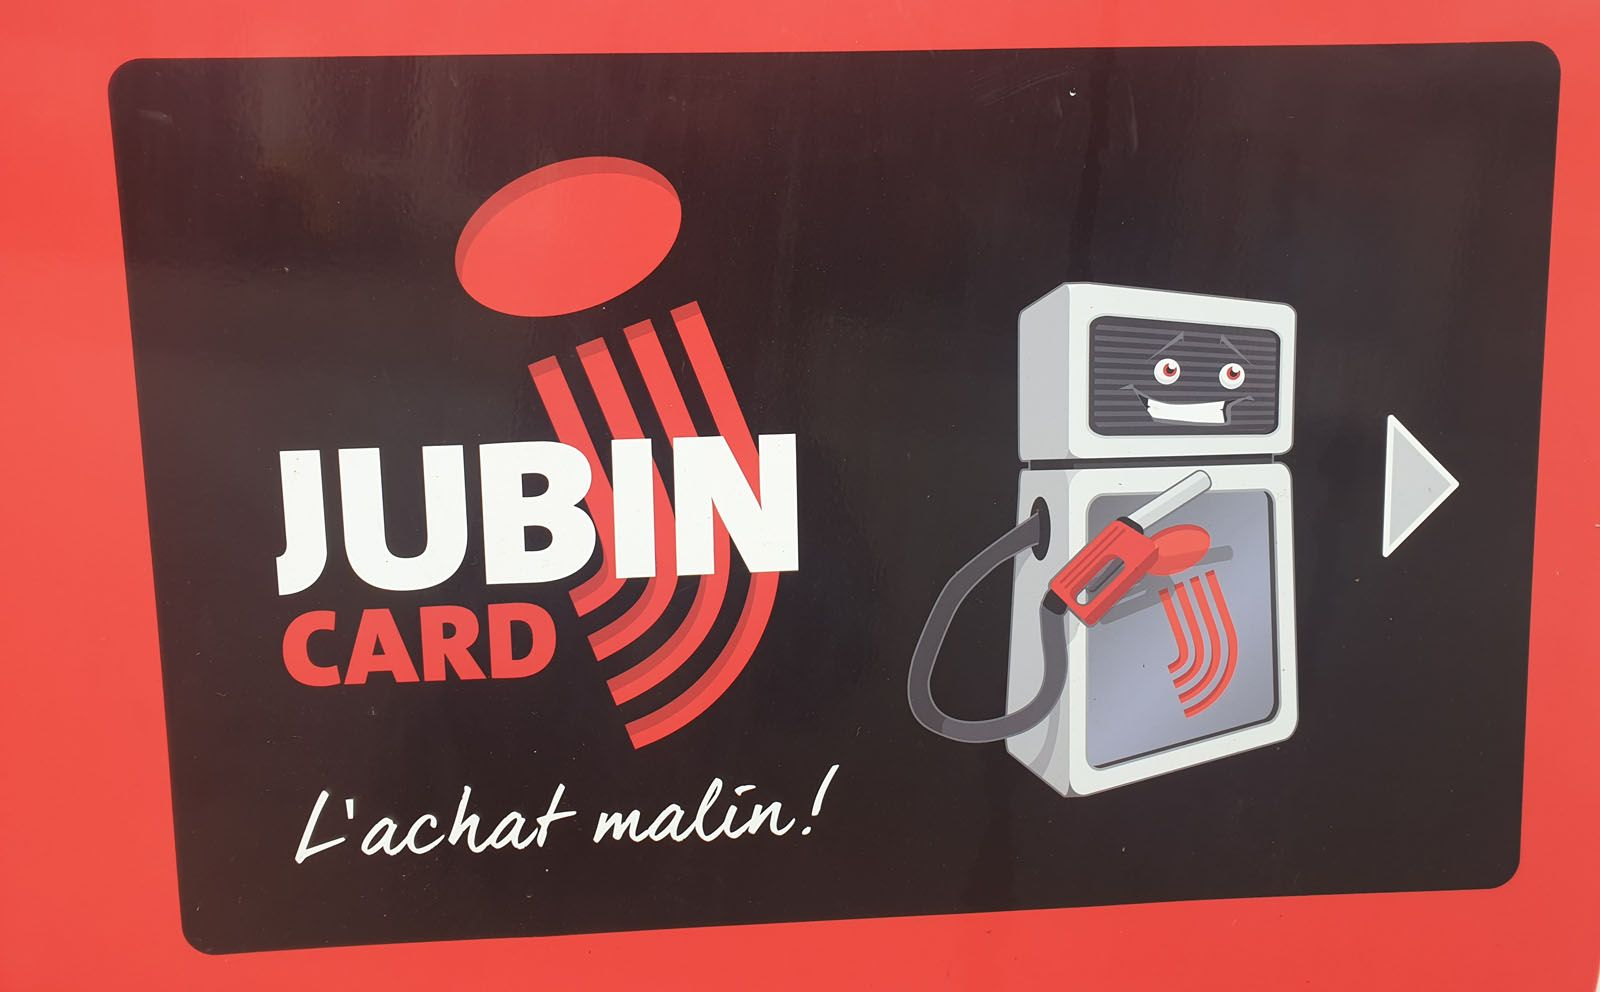 Jubin card - Le Virage